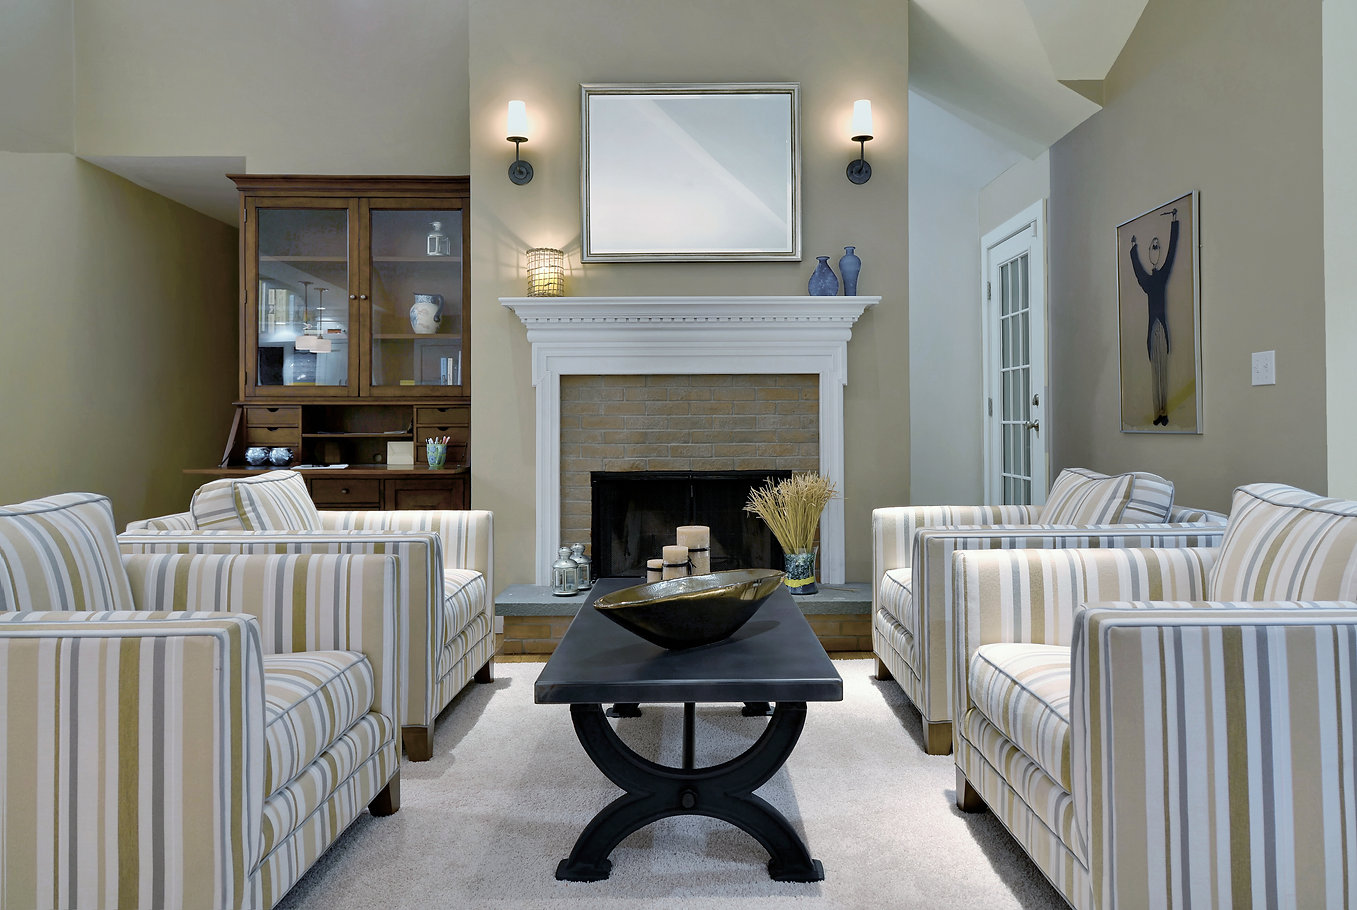 Southampton interior design,  transitional living room, living room seating area, striped chairs, brick fireplace, metal coffee table, beige and white liing room, white shag rug